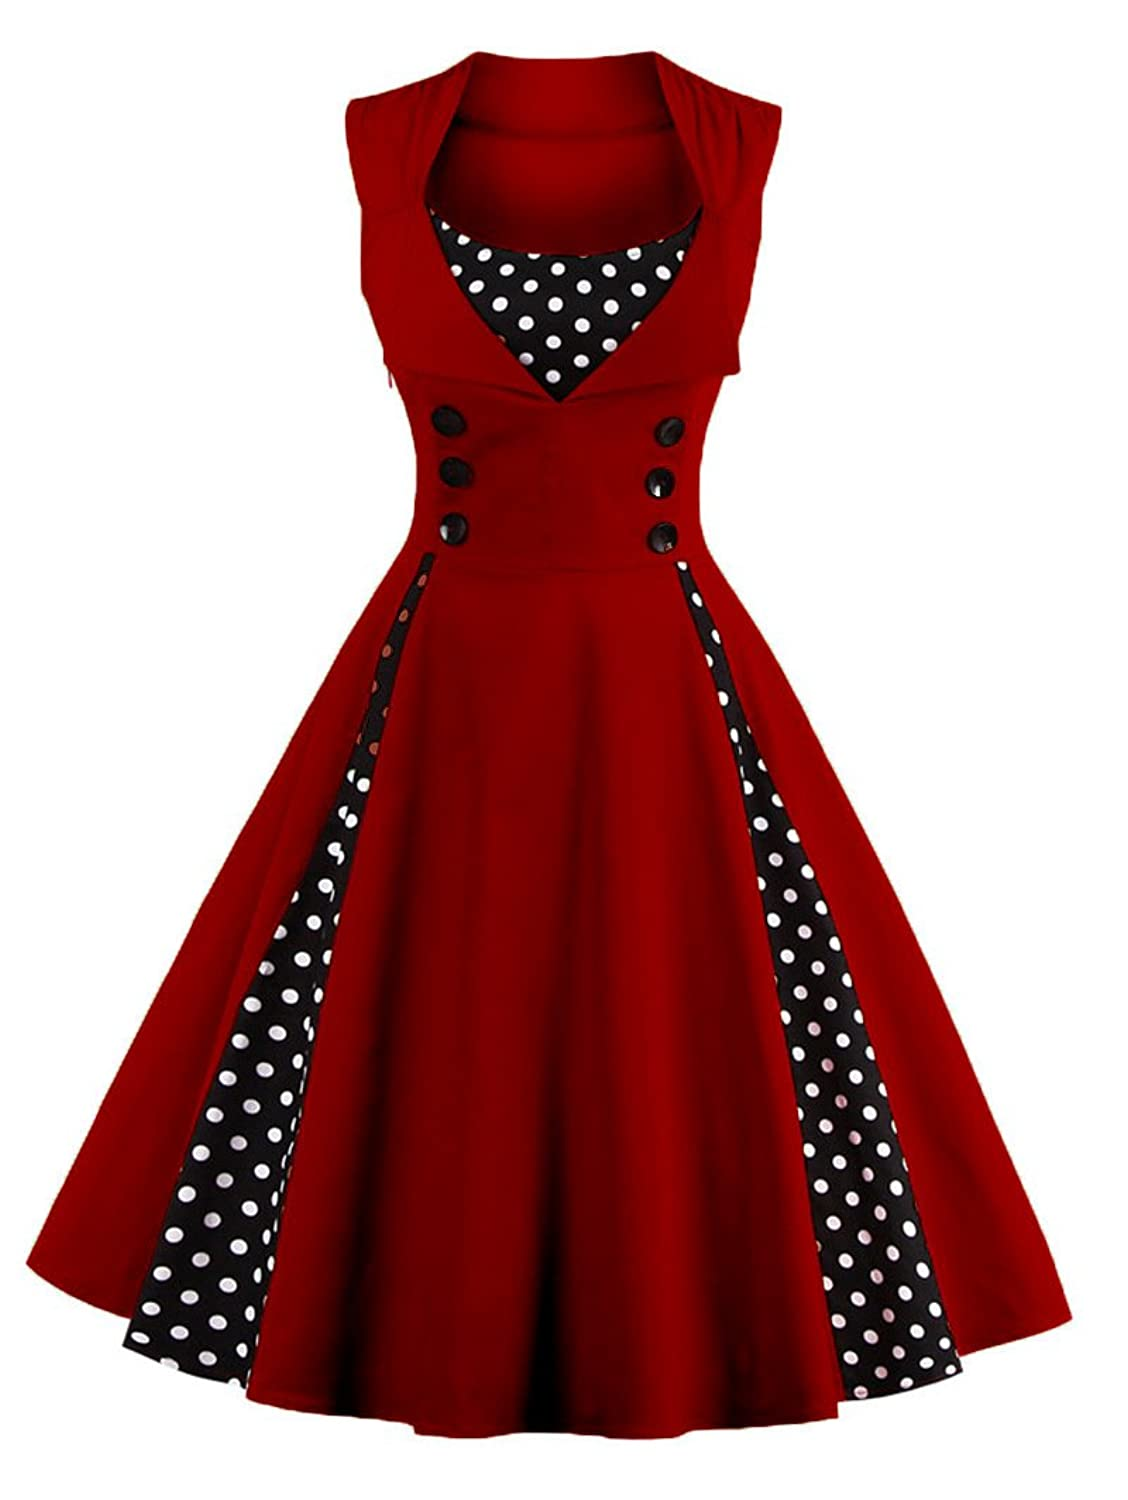 Rockabilly Dresses | Rockabilly Clothing | Viva Las Vegas LUNAJANY Womens Rockabilly Vintage Polka Dot Pin up Swing Cocktail Party Dress $24.59 AT vintagedancer.com